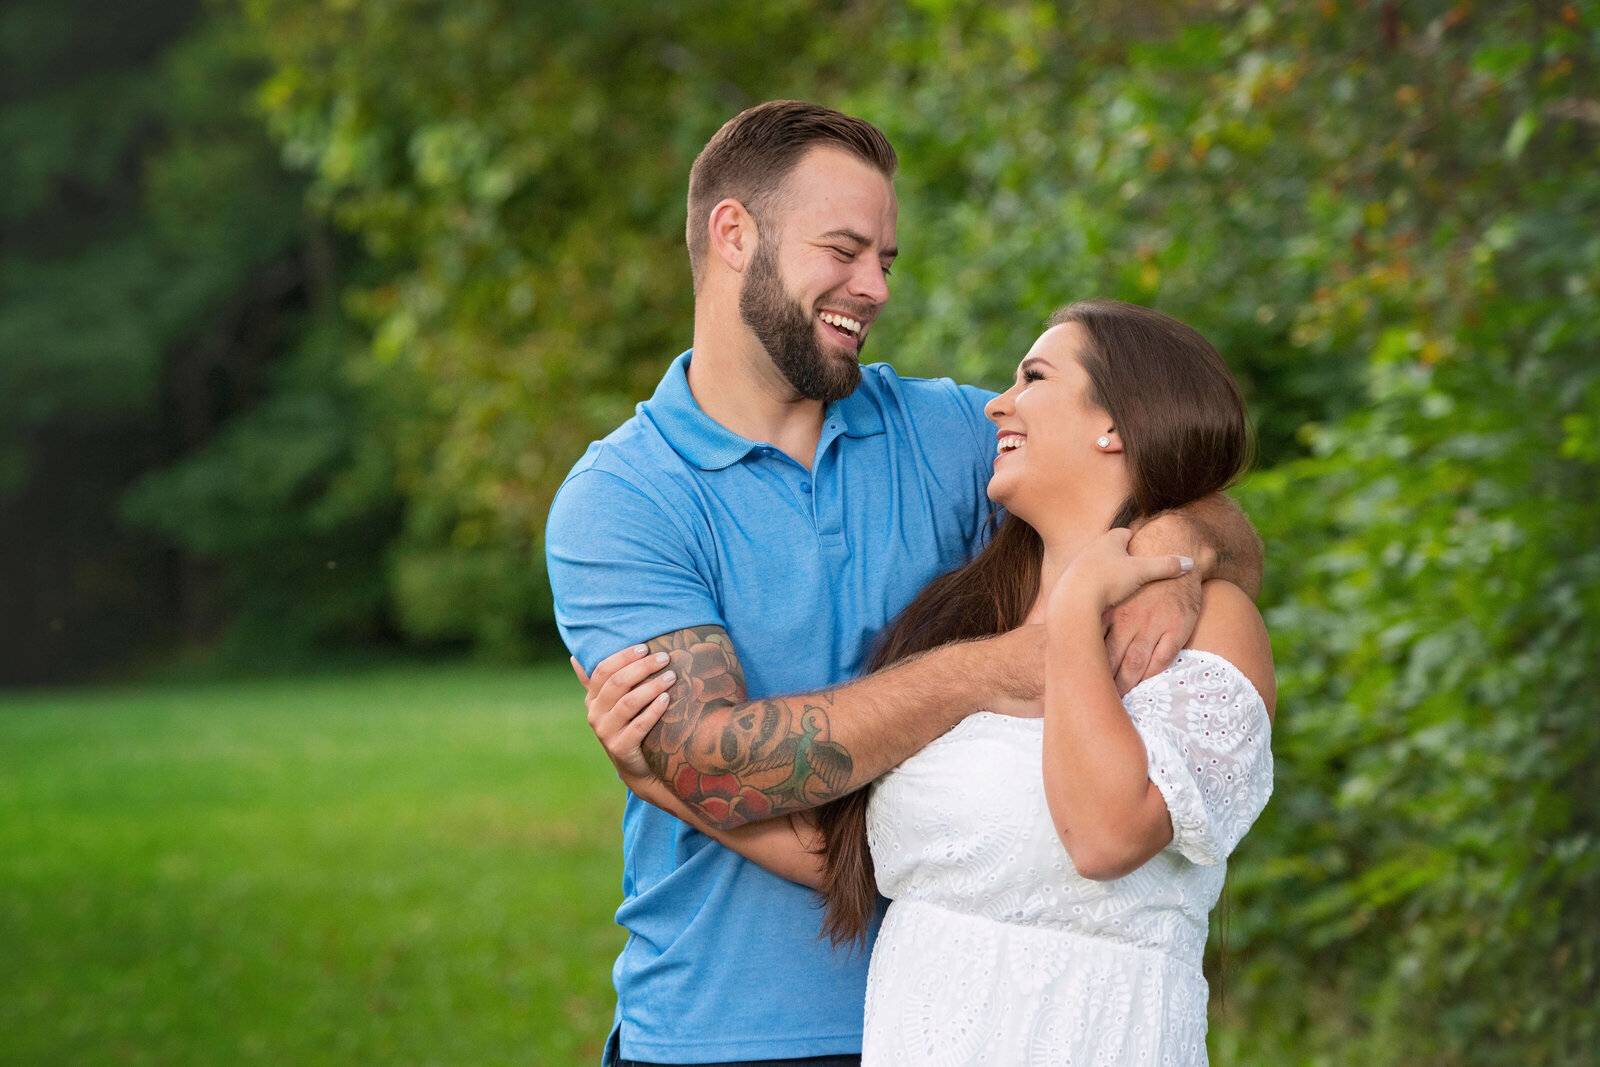 Engagement-Pictures-Grant-Park-South-Milwaukee-Wisconsin-71